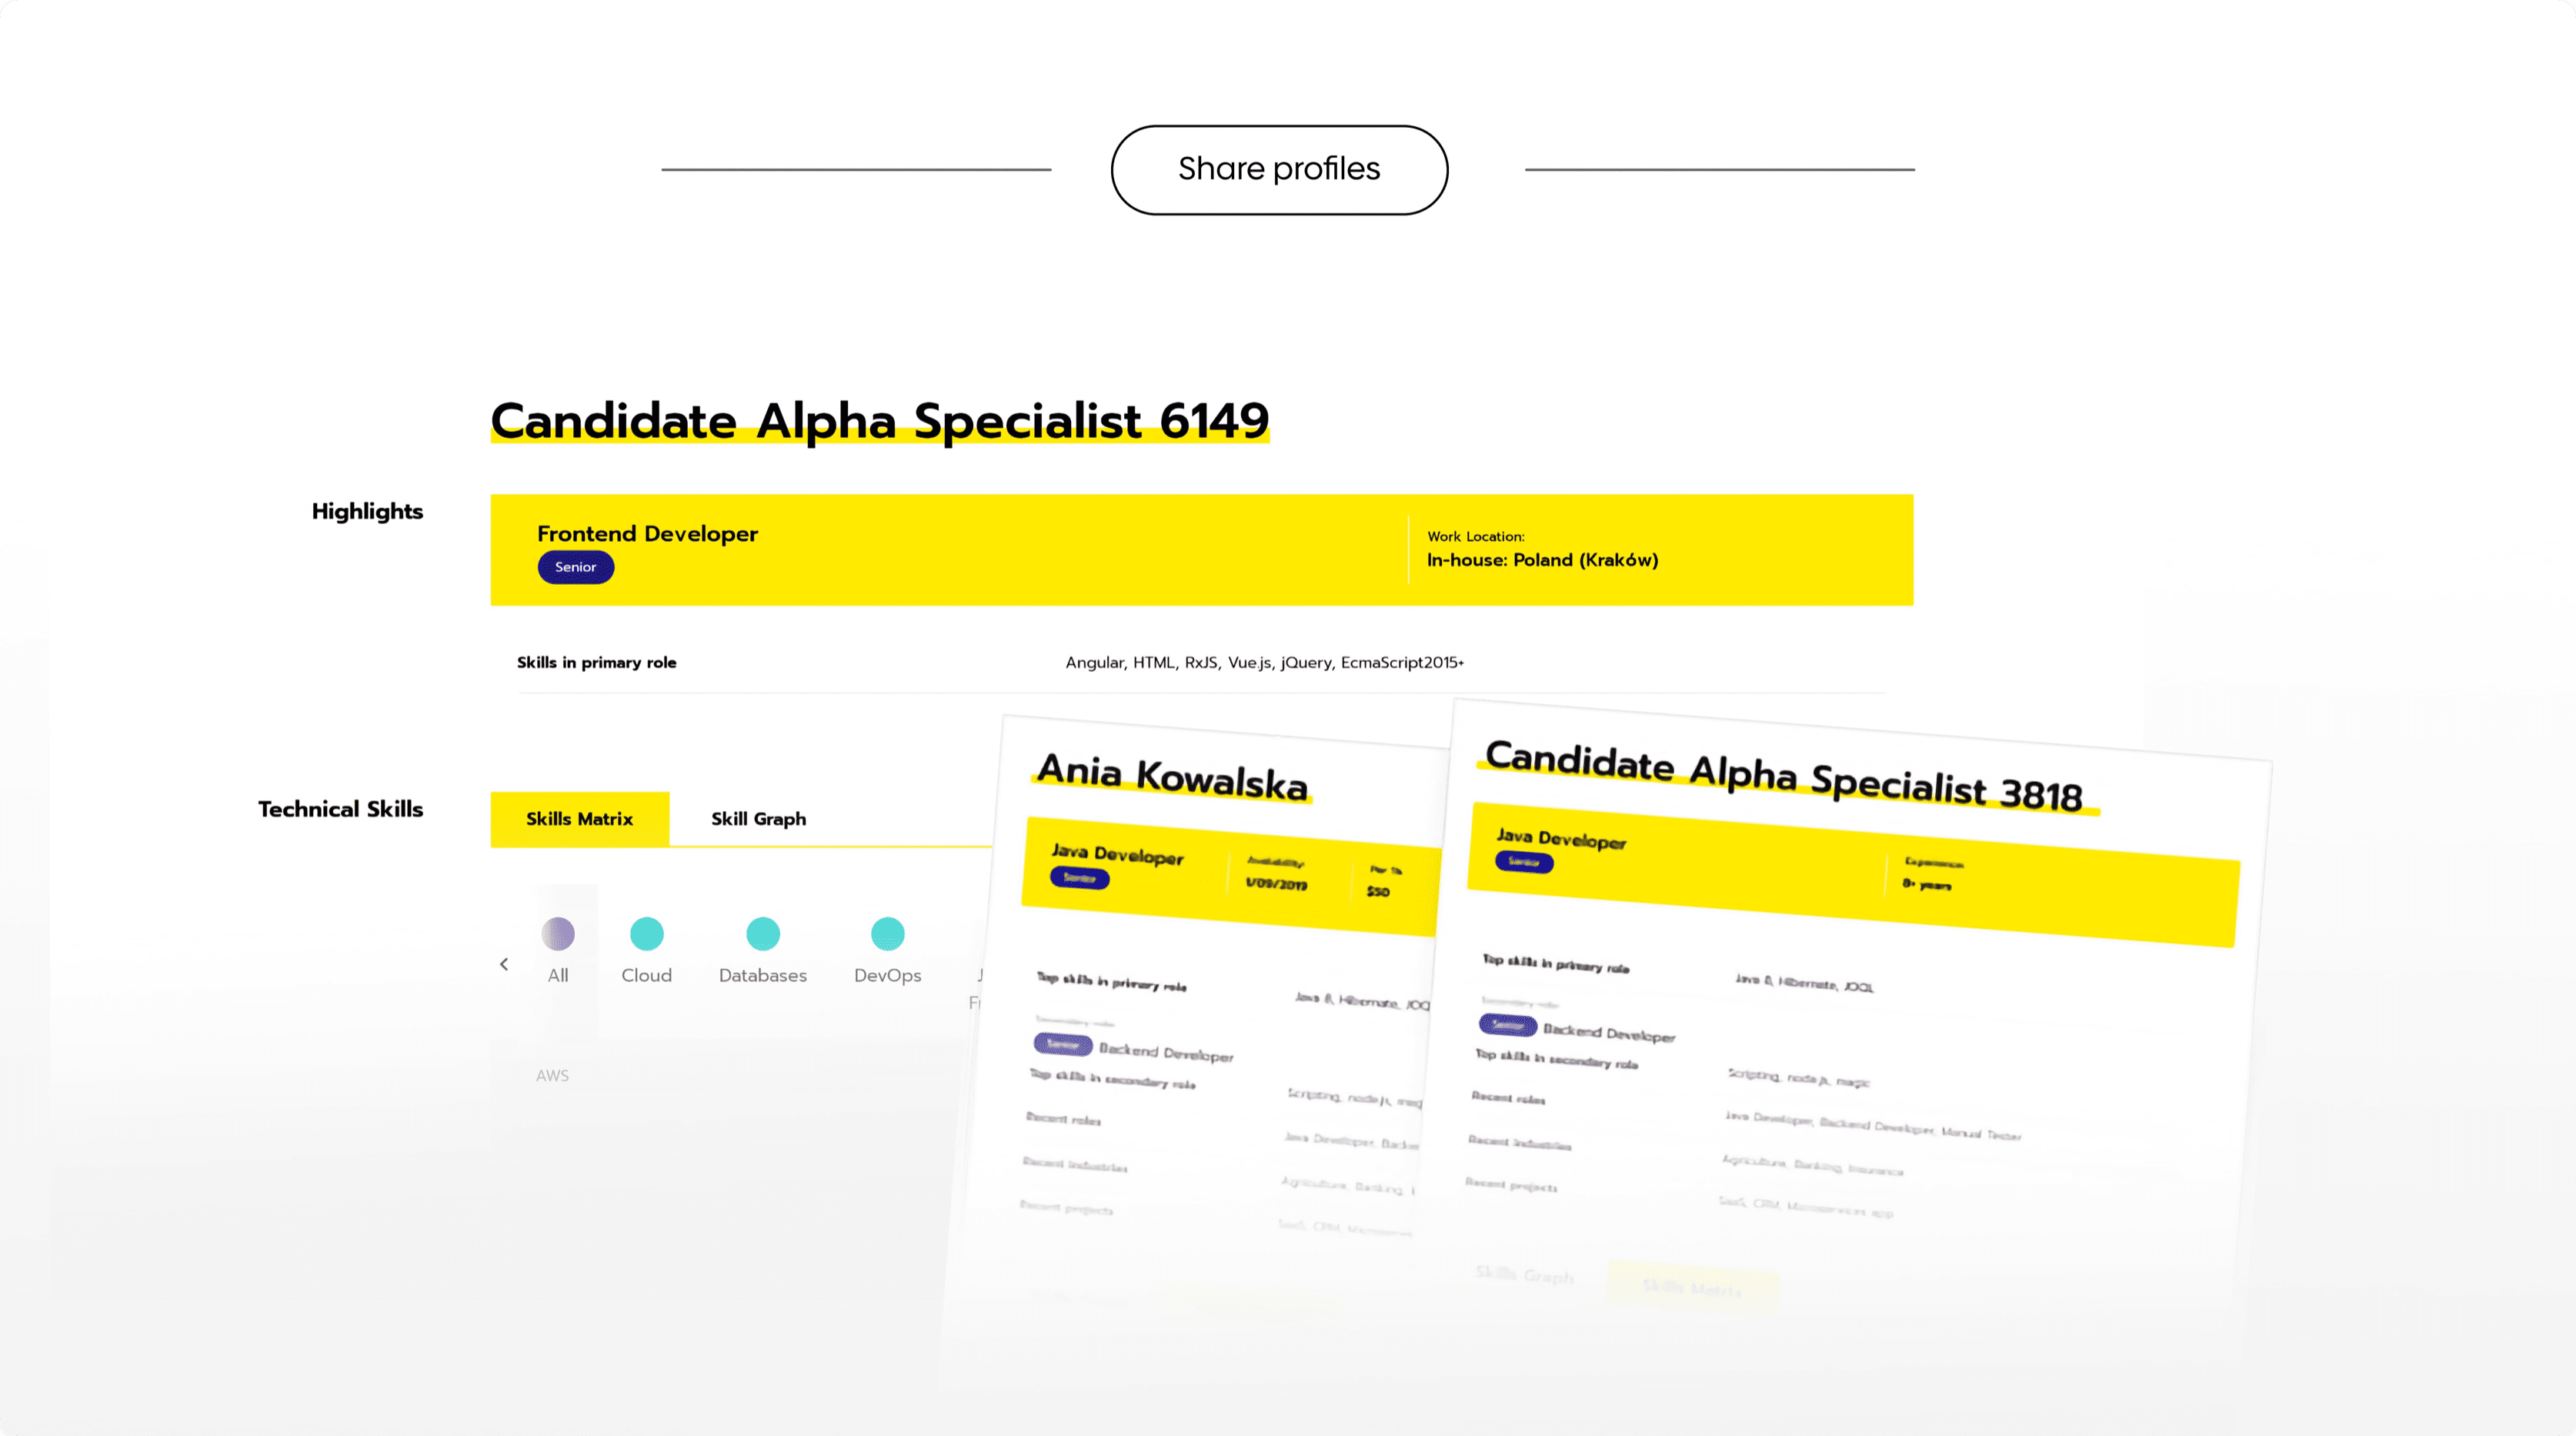 Sample screen from Talent Searching PLatform